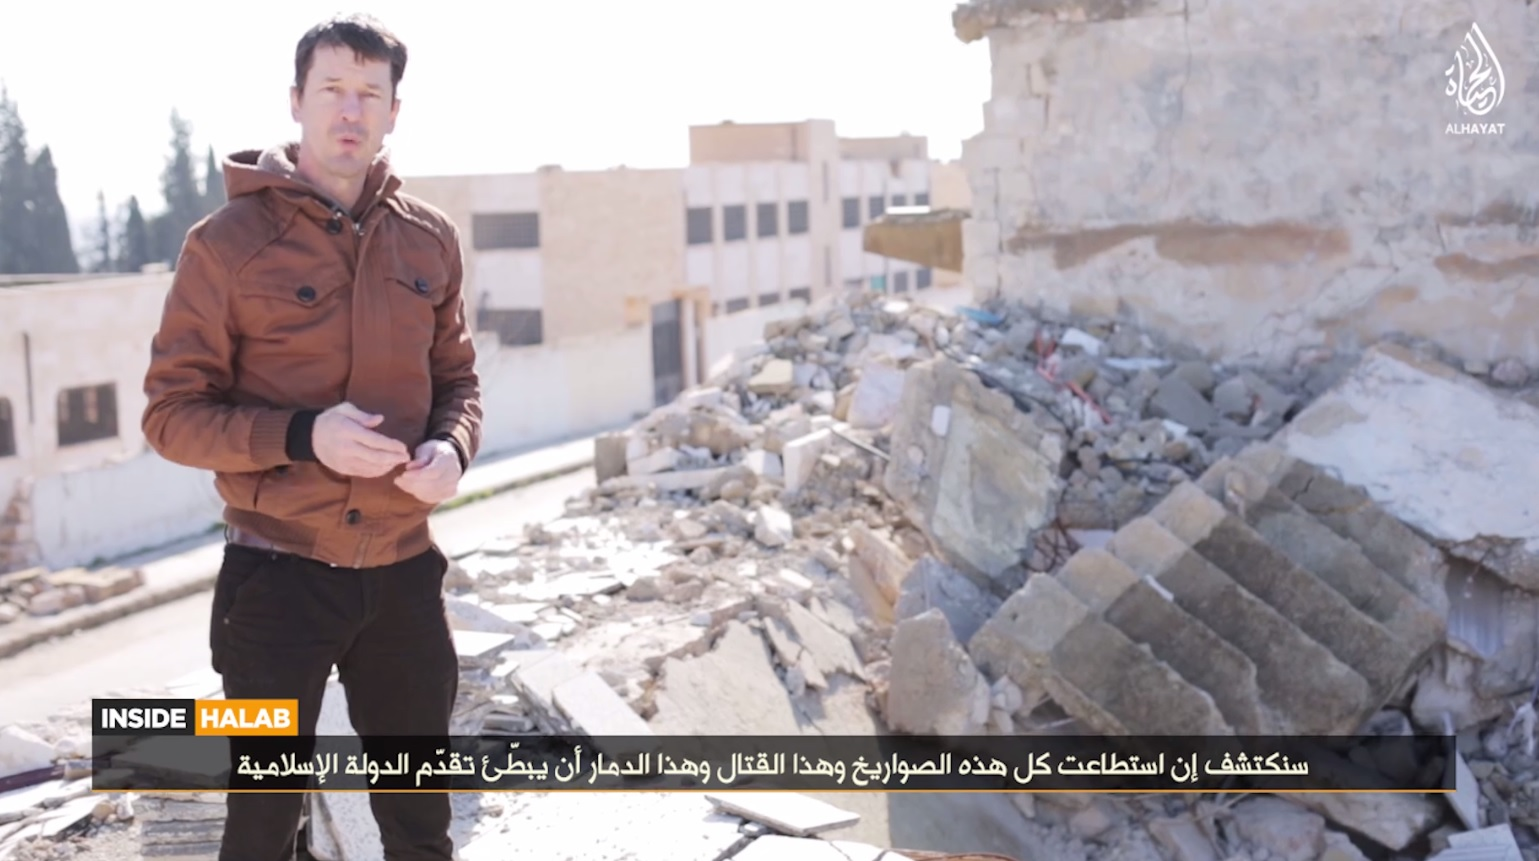 British hostage John Cantlie appears in an Isis video recorded in Aleppo, Syria.